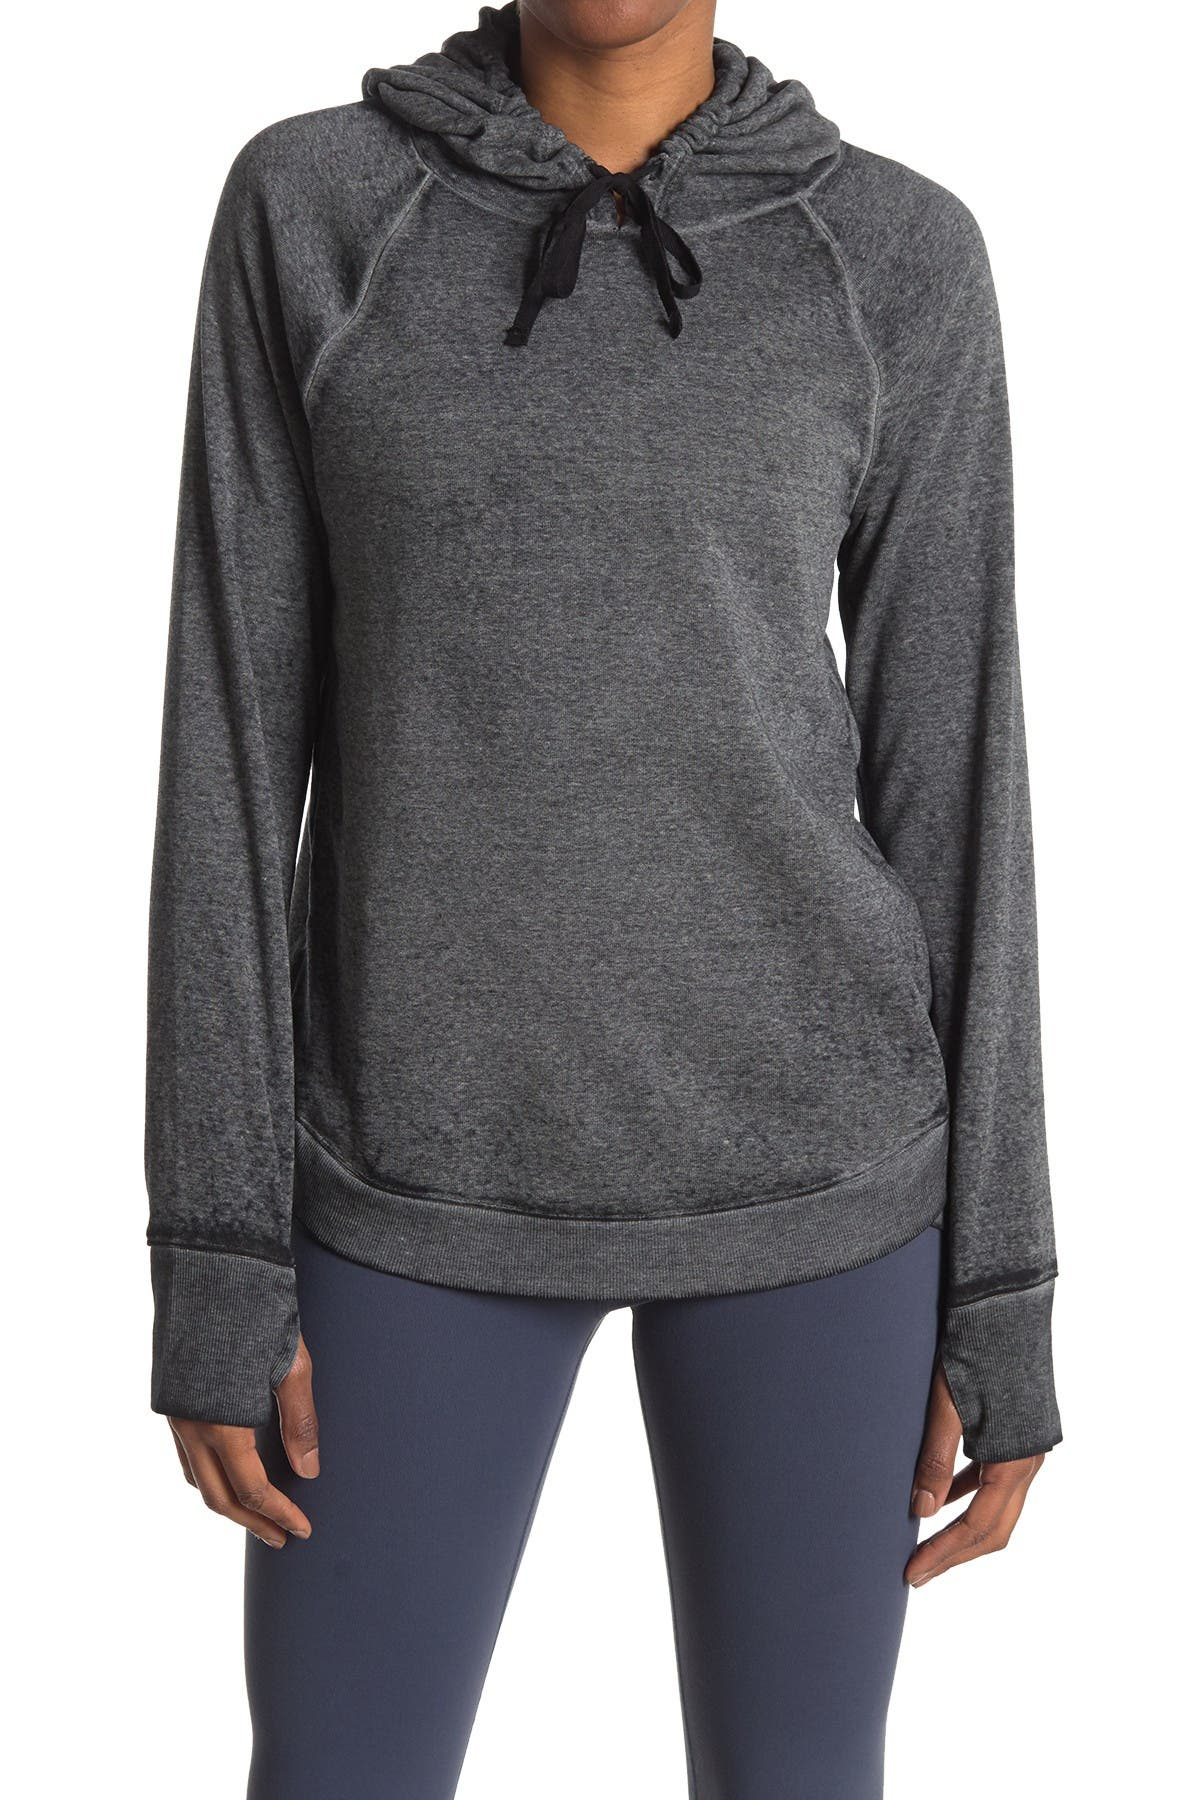 Image of Threads 4 Thought Indra Burnout Hoodie